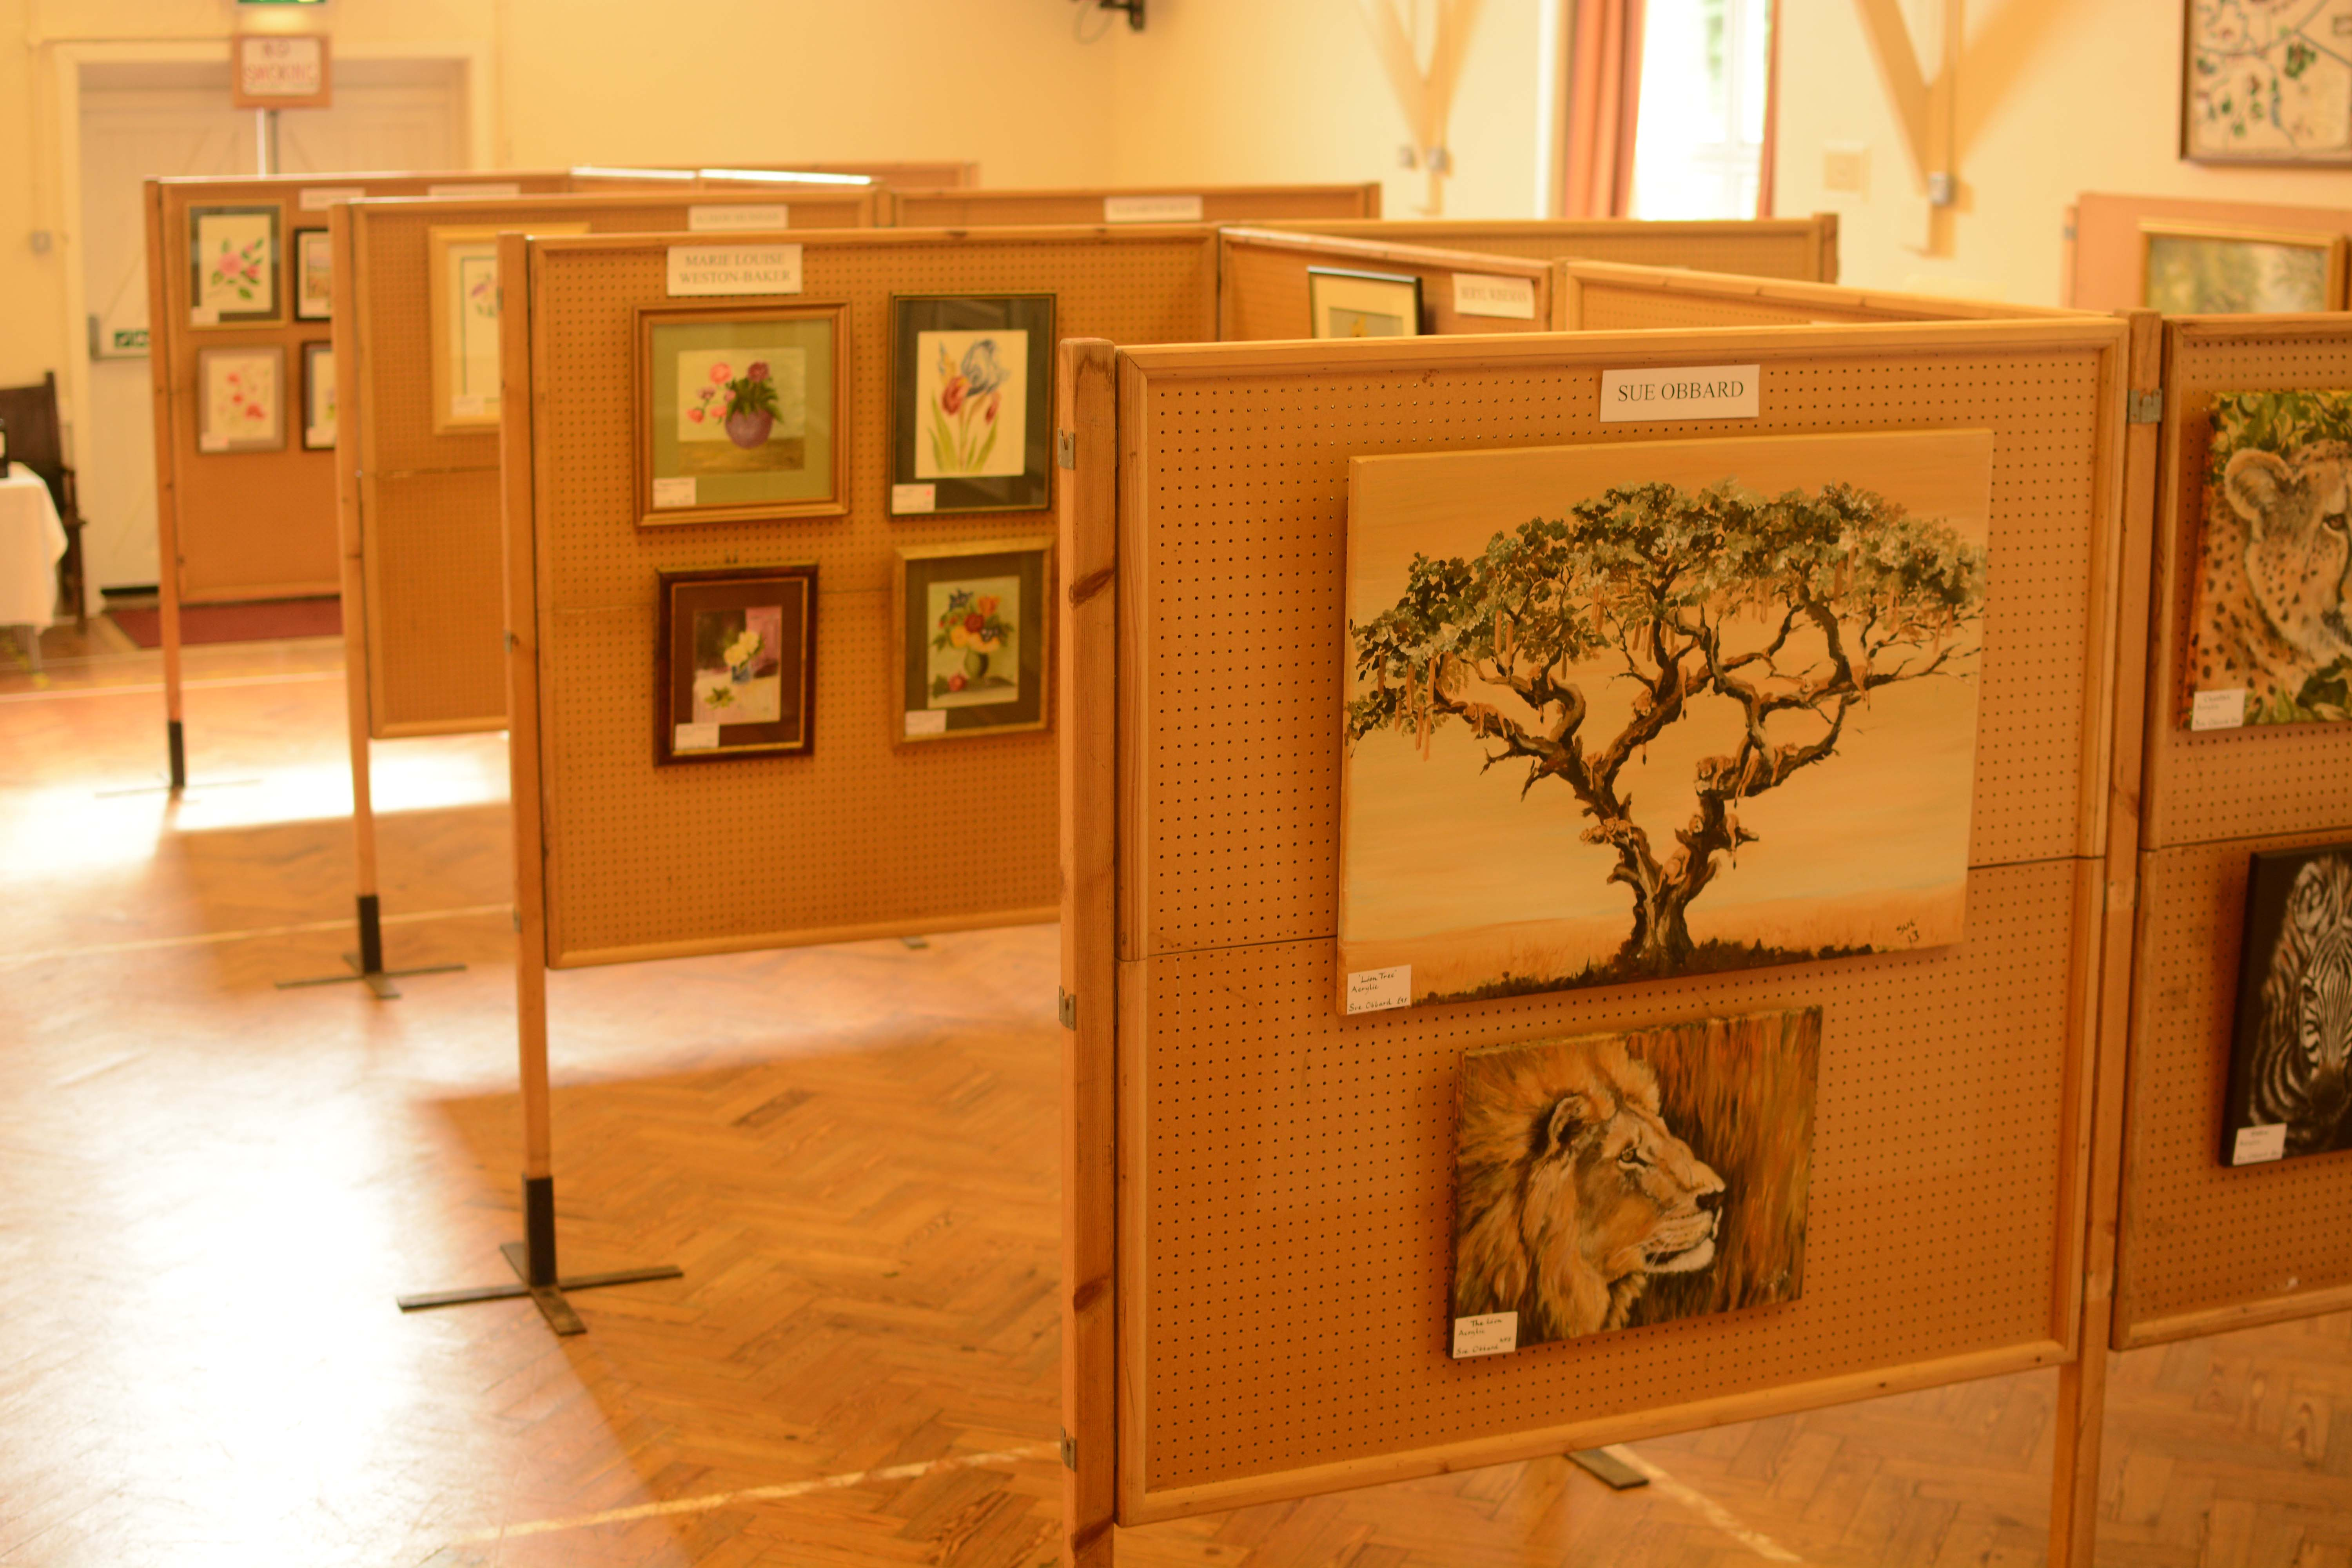 Hire the hall for an exhibition!